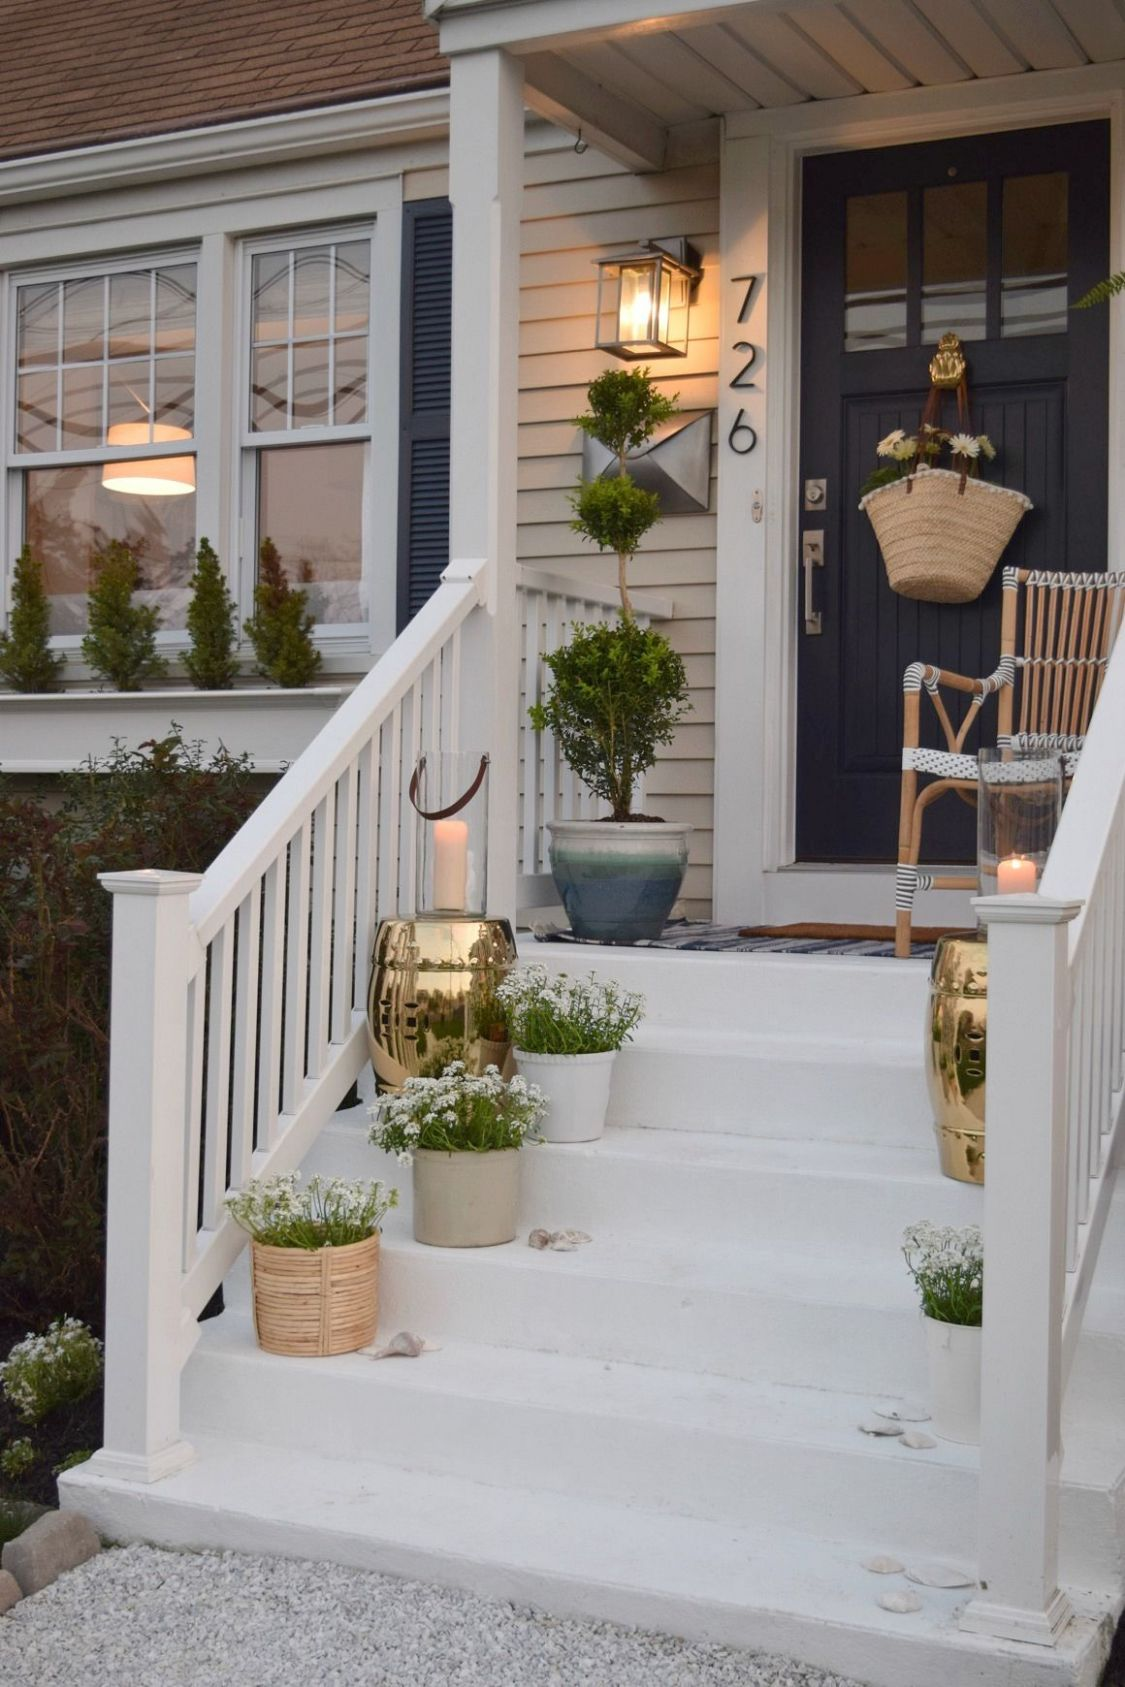 Front Porch Ideas and Designing the Outdoors | Front porch design ... - front porch ideas